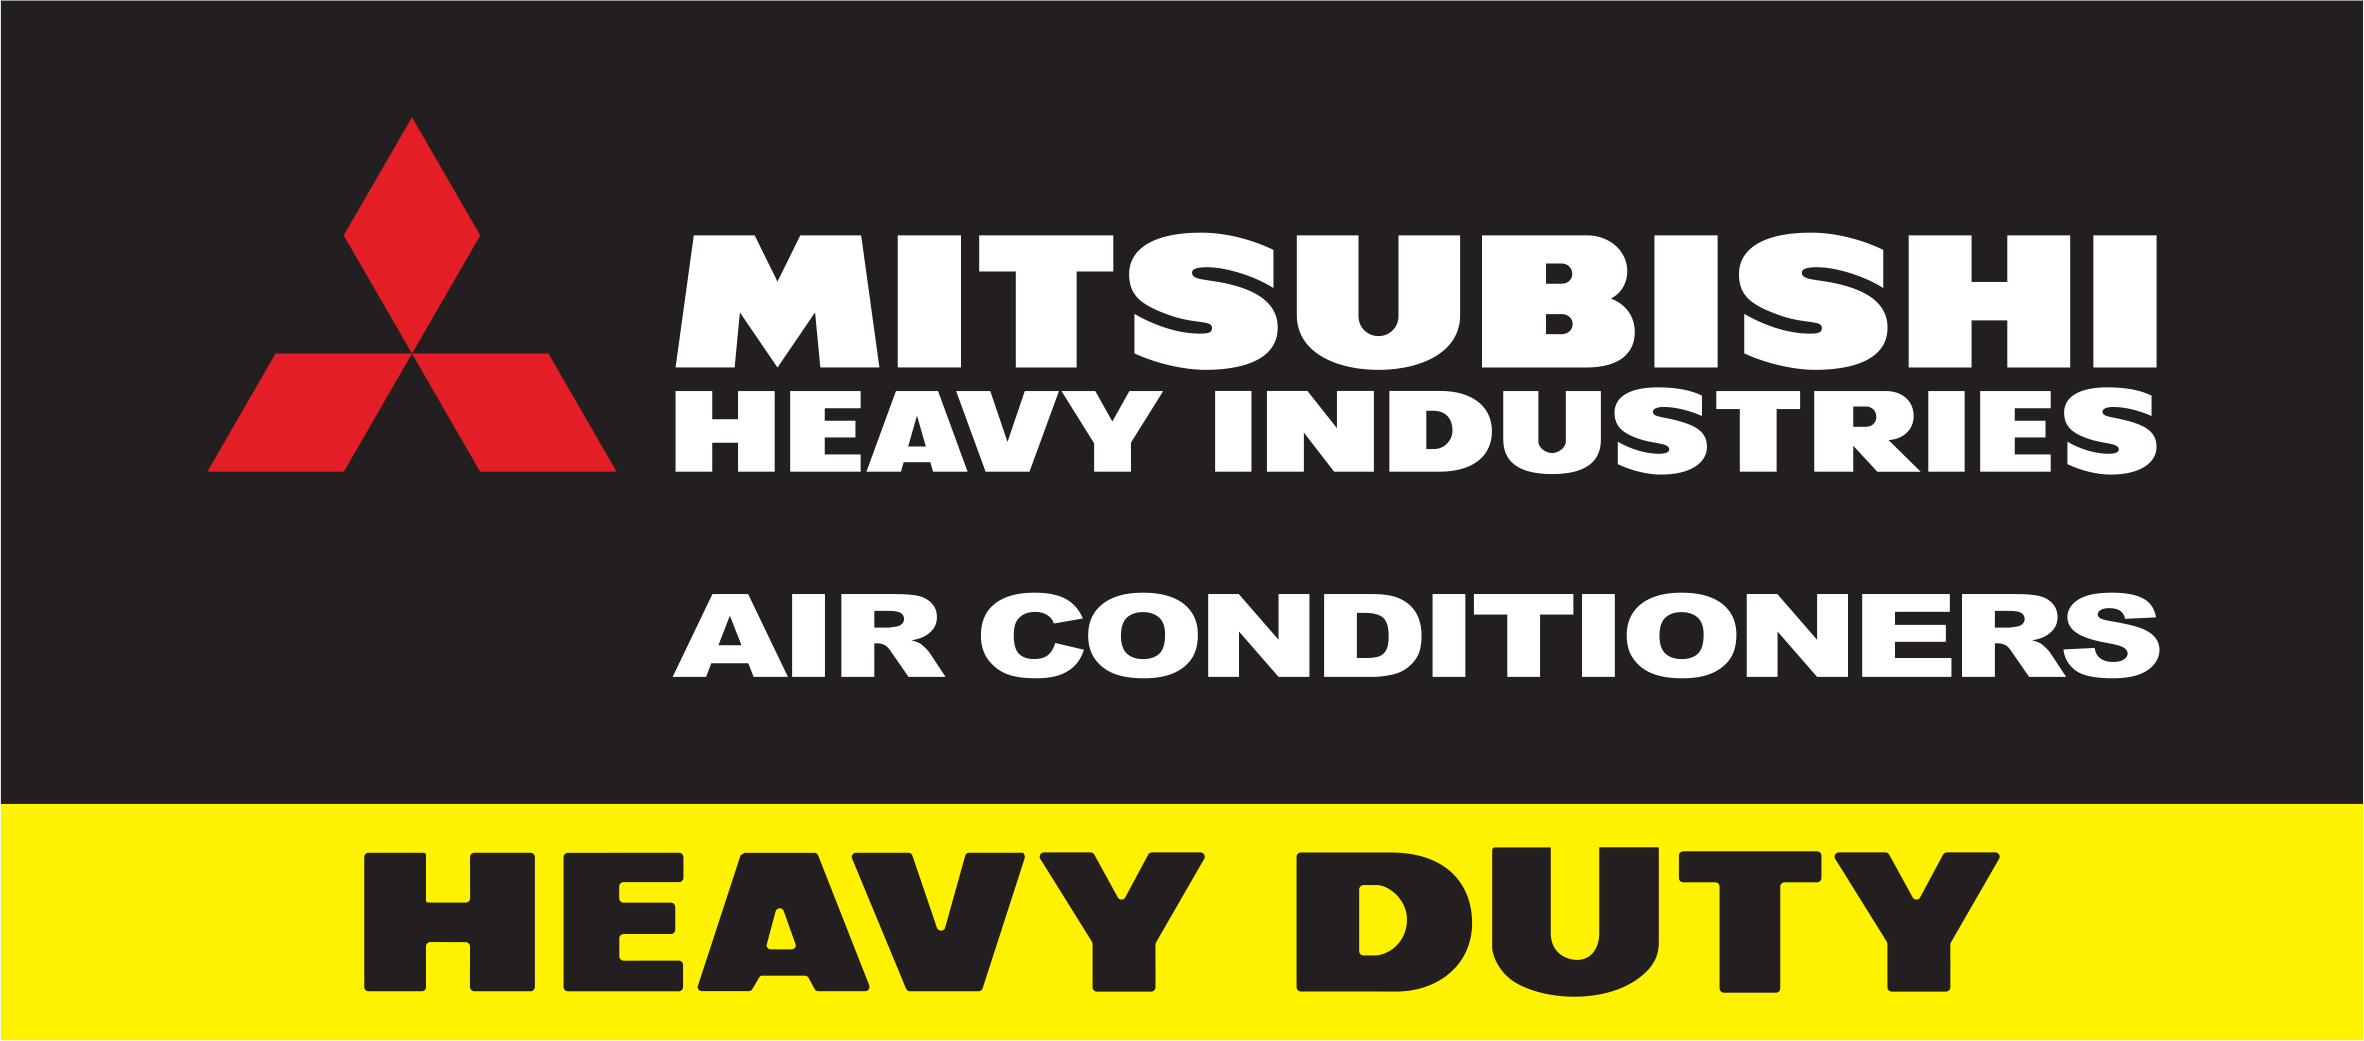 mitsubishi heavy industries air conditioning wiring